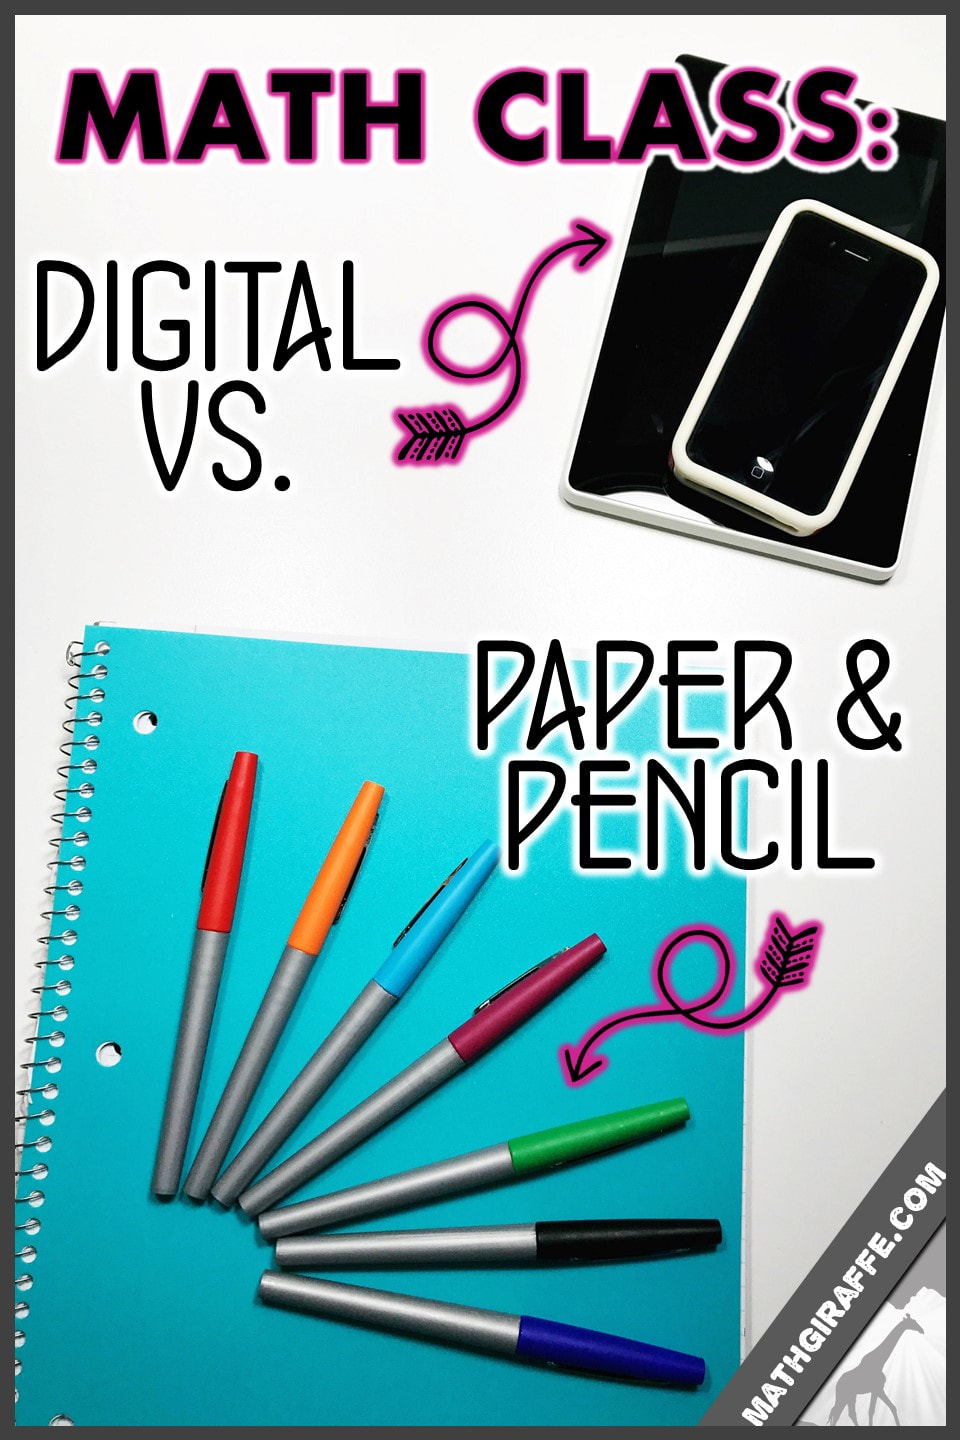 Digital vs. Paper in Math Class - The Challenges of a Paperless or ...